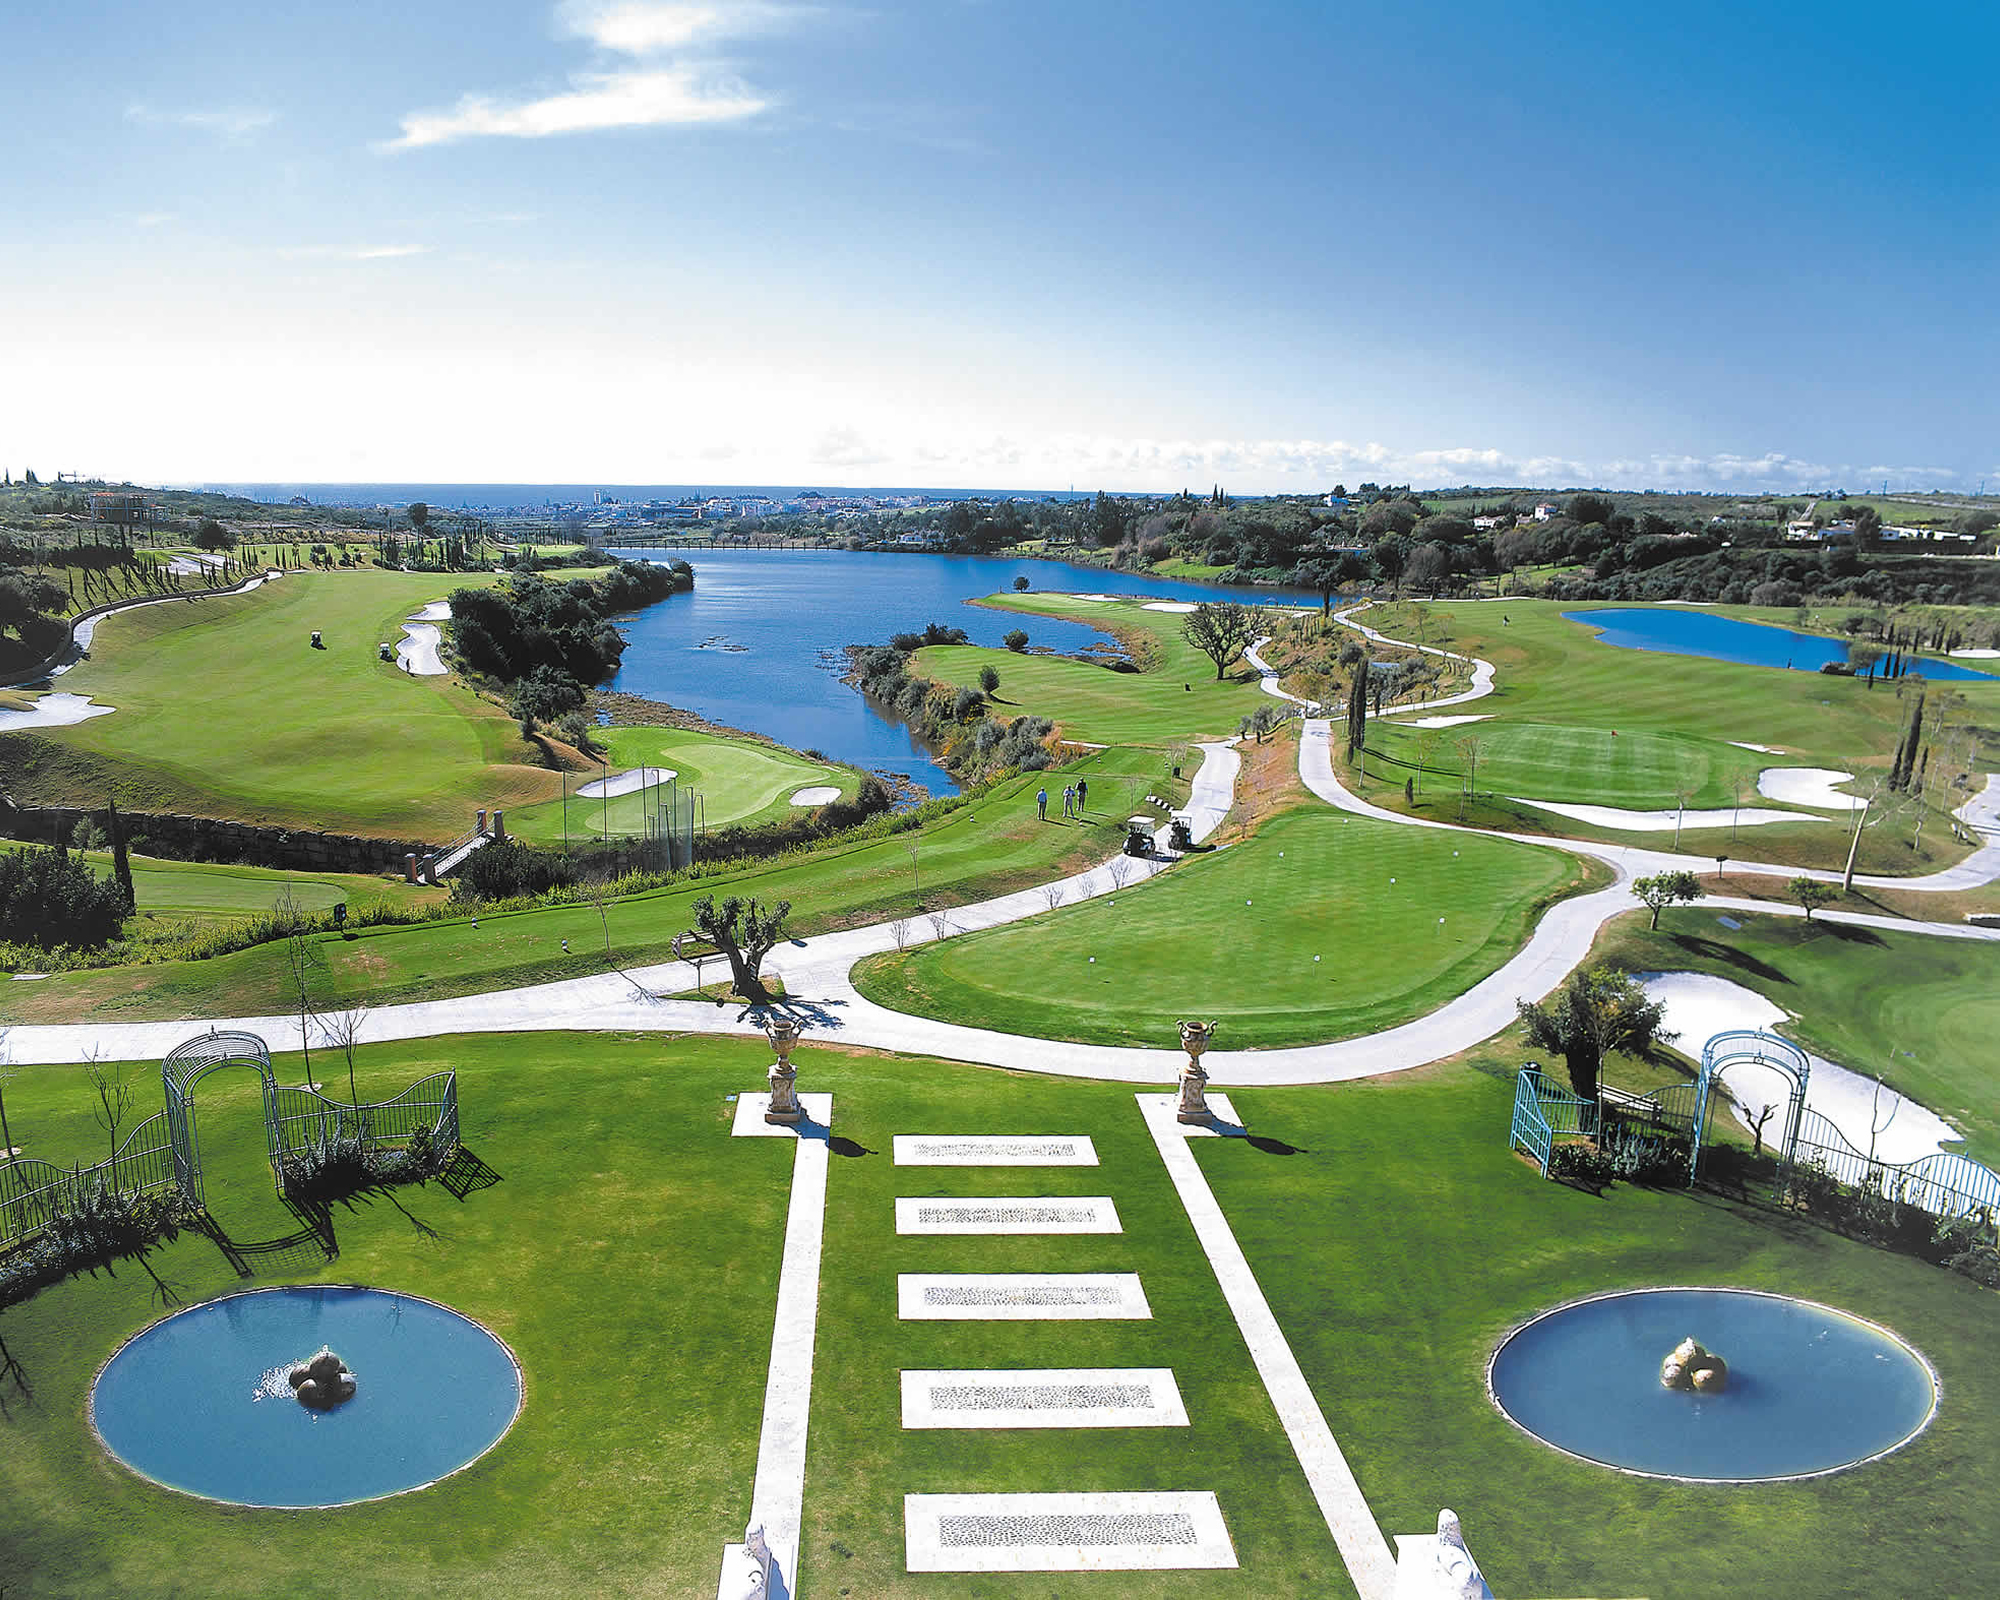 Marbella Design Academy - Costa del Golf